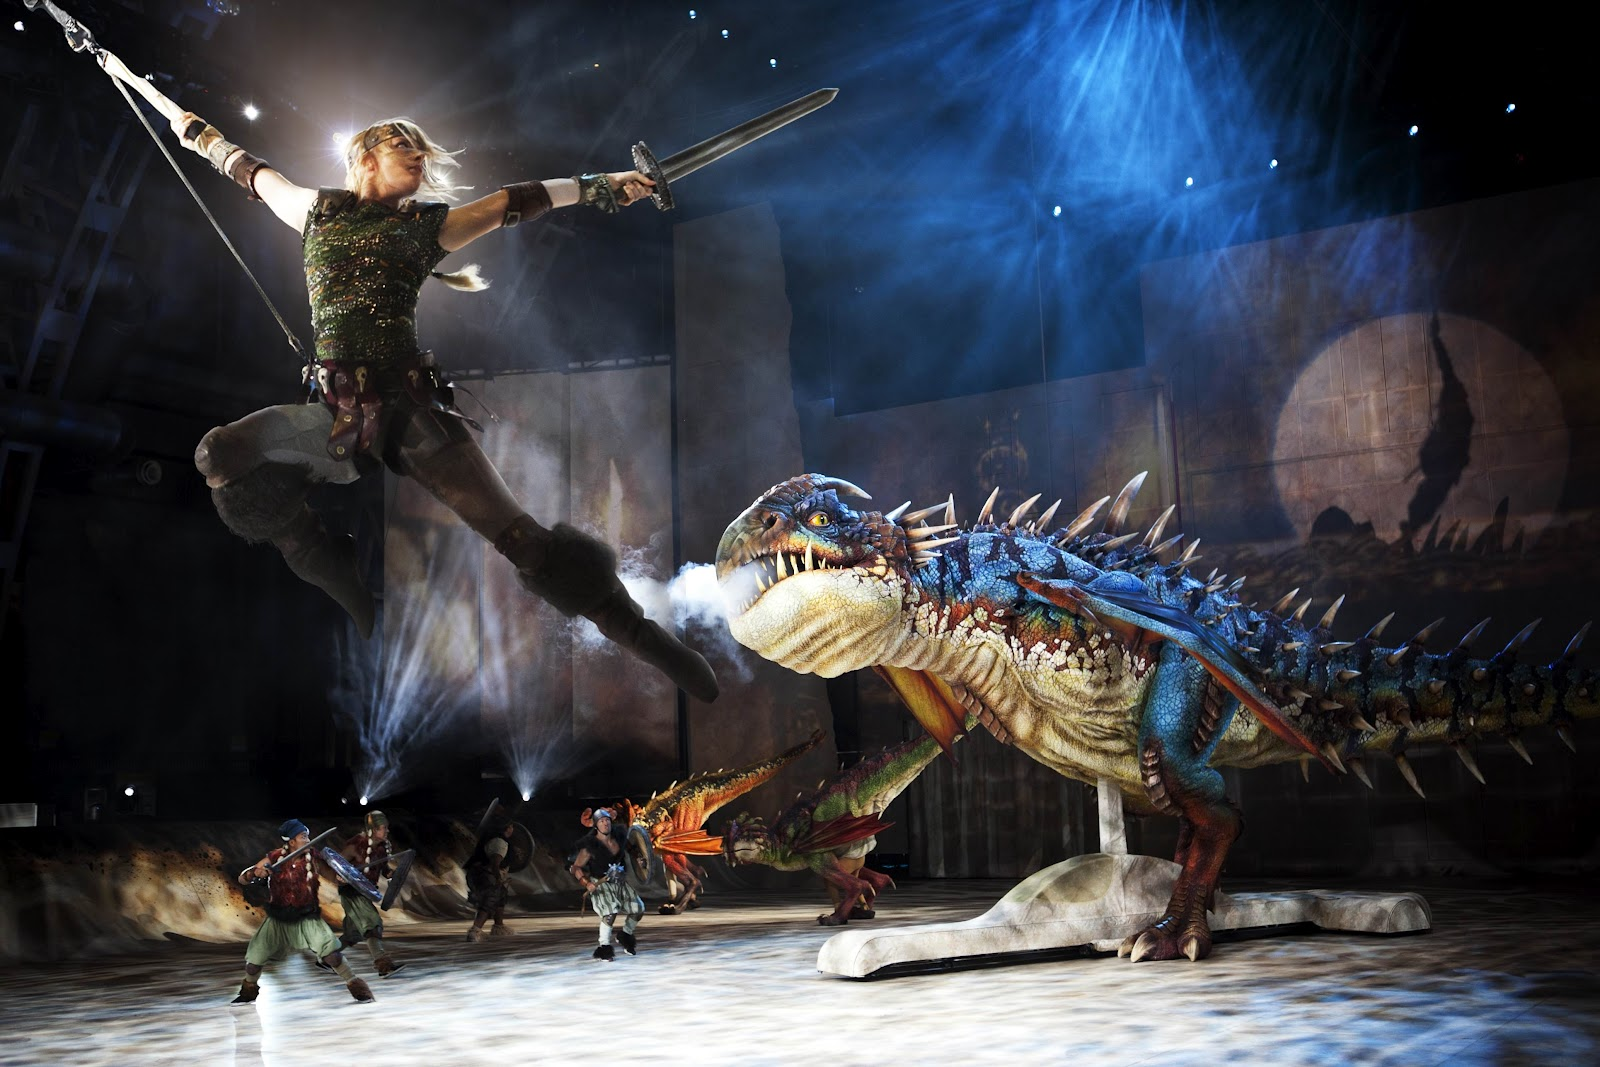 ChiIL Mama : Dragons and Drama and Dreamworks   Oh My!